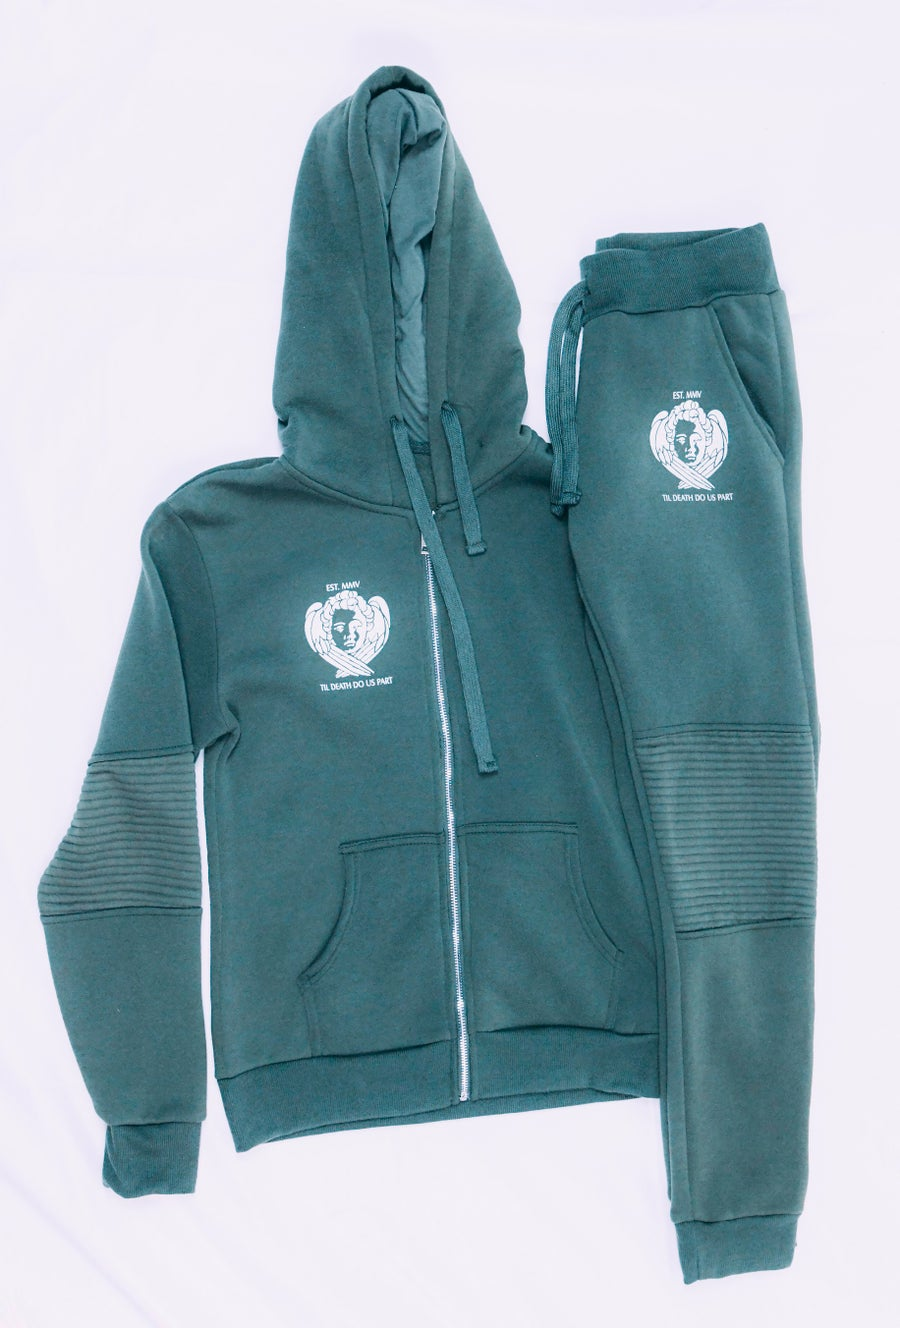 Image of Til Death Zip Up Sweat Suit (olive)